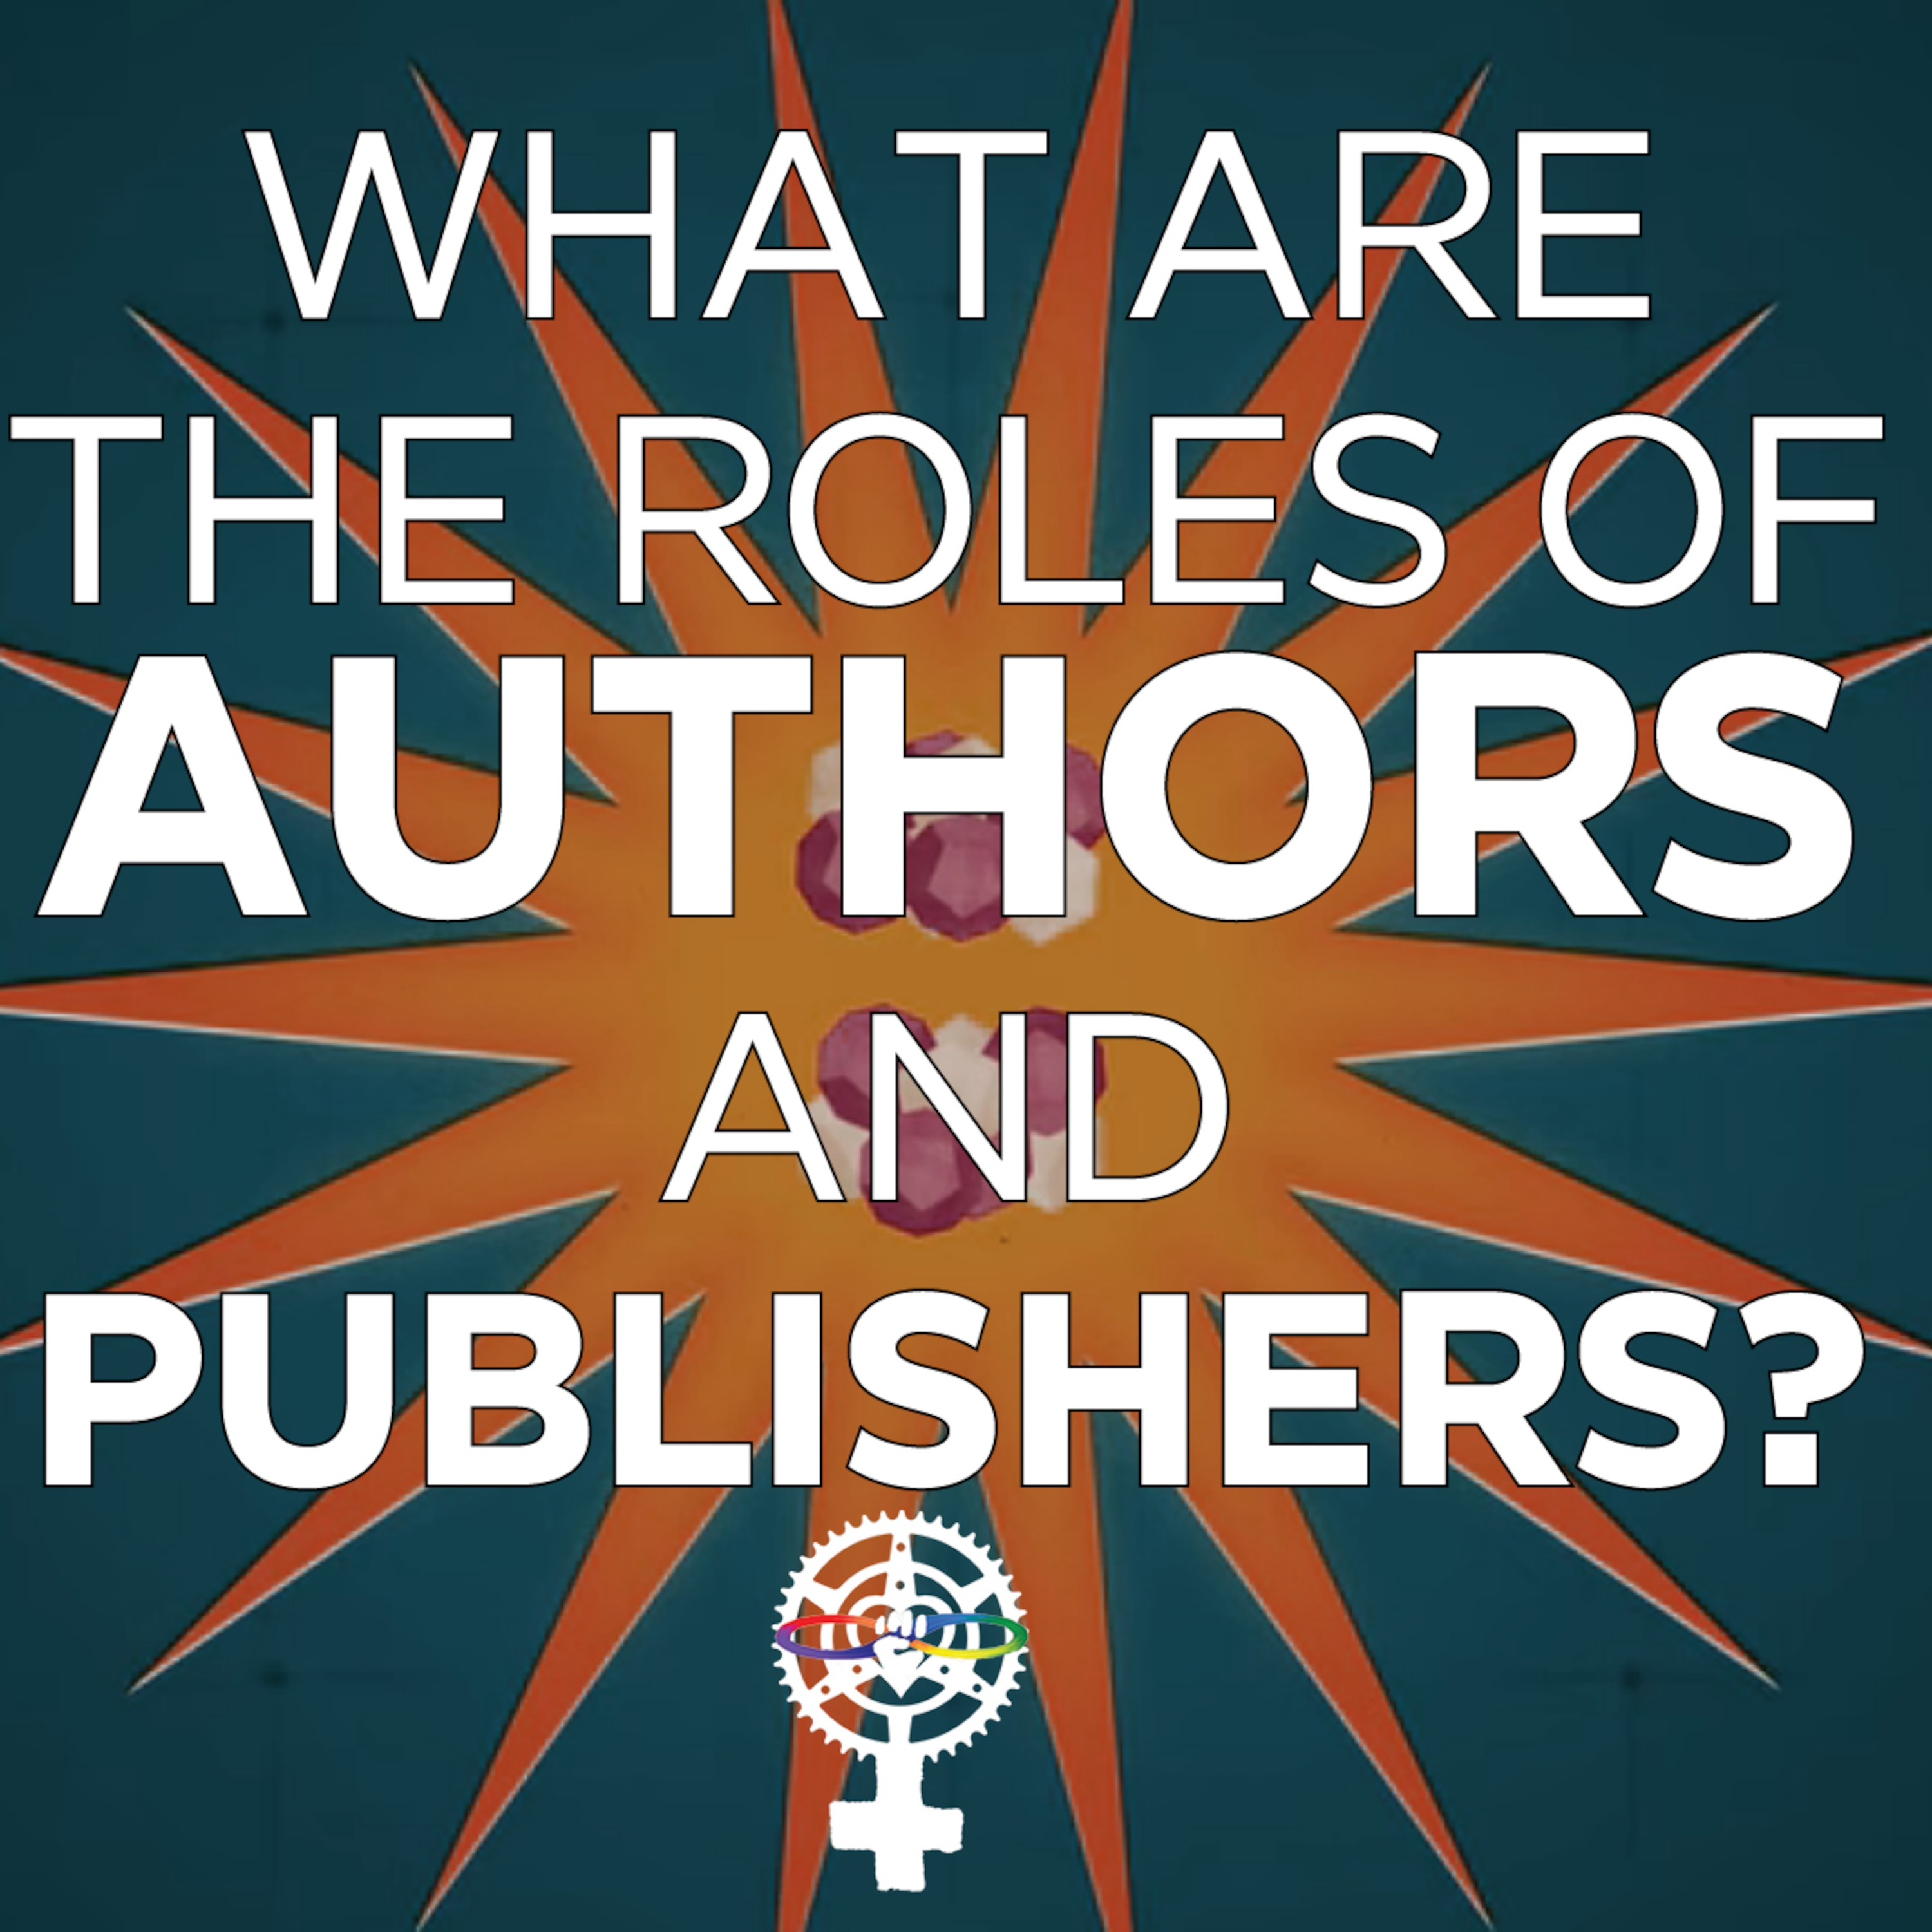 What are the roles of being an author and a publisher?